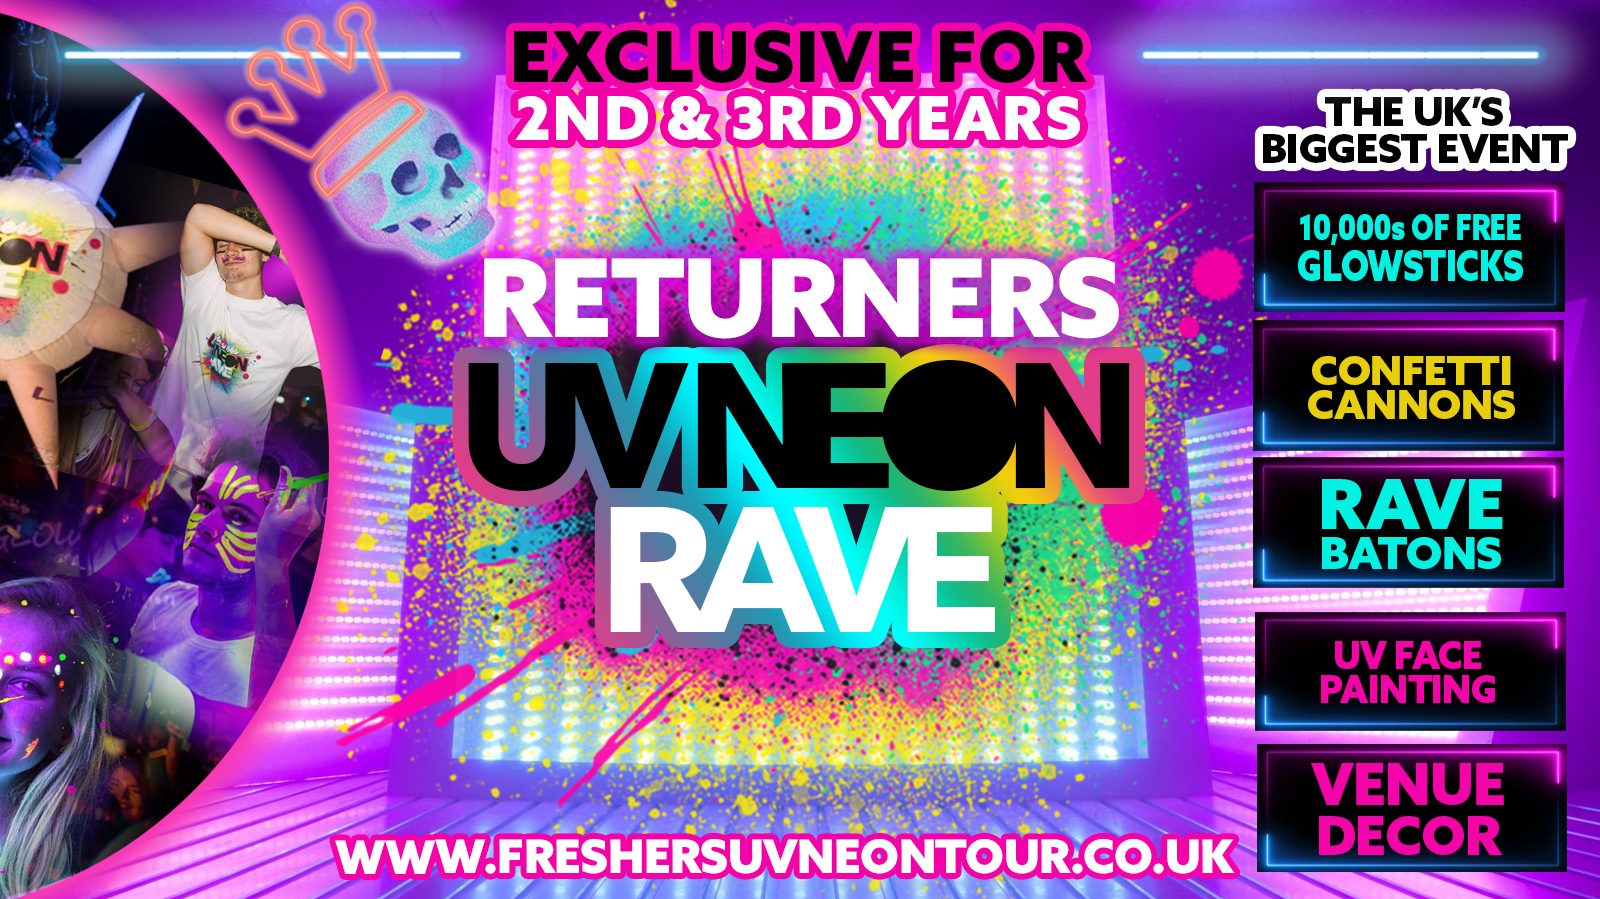 Liverpool Returners UV Neon Rave   Exclusive for 2nd & 3rd Years